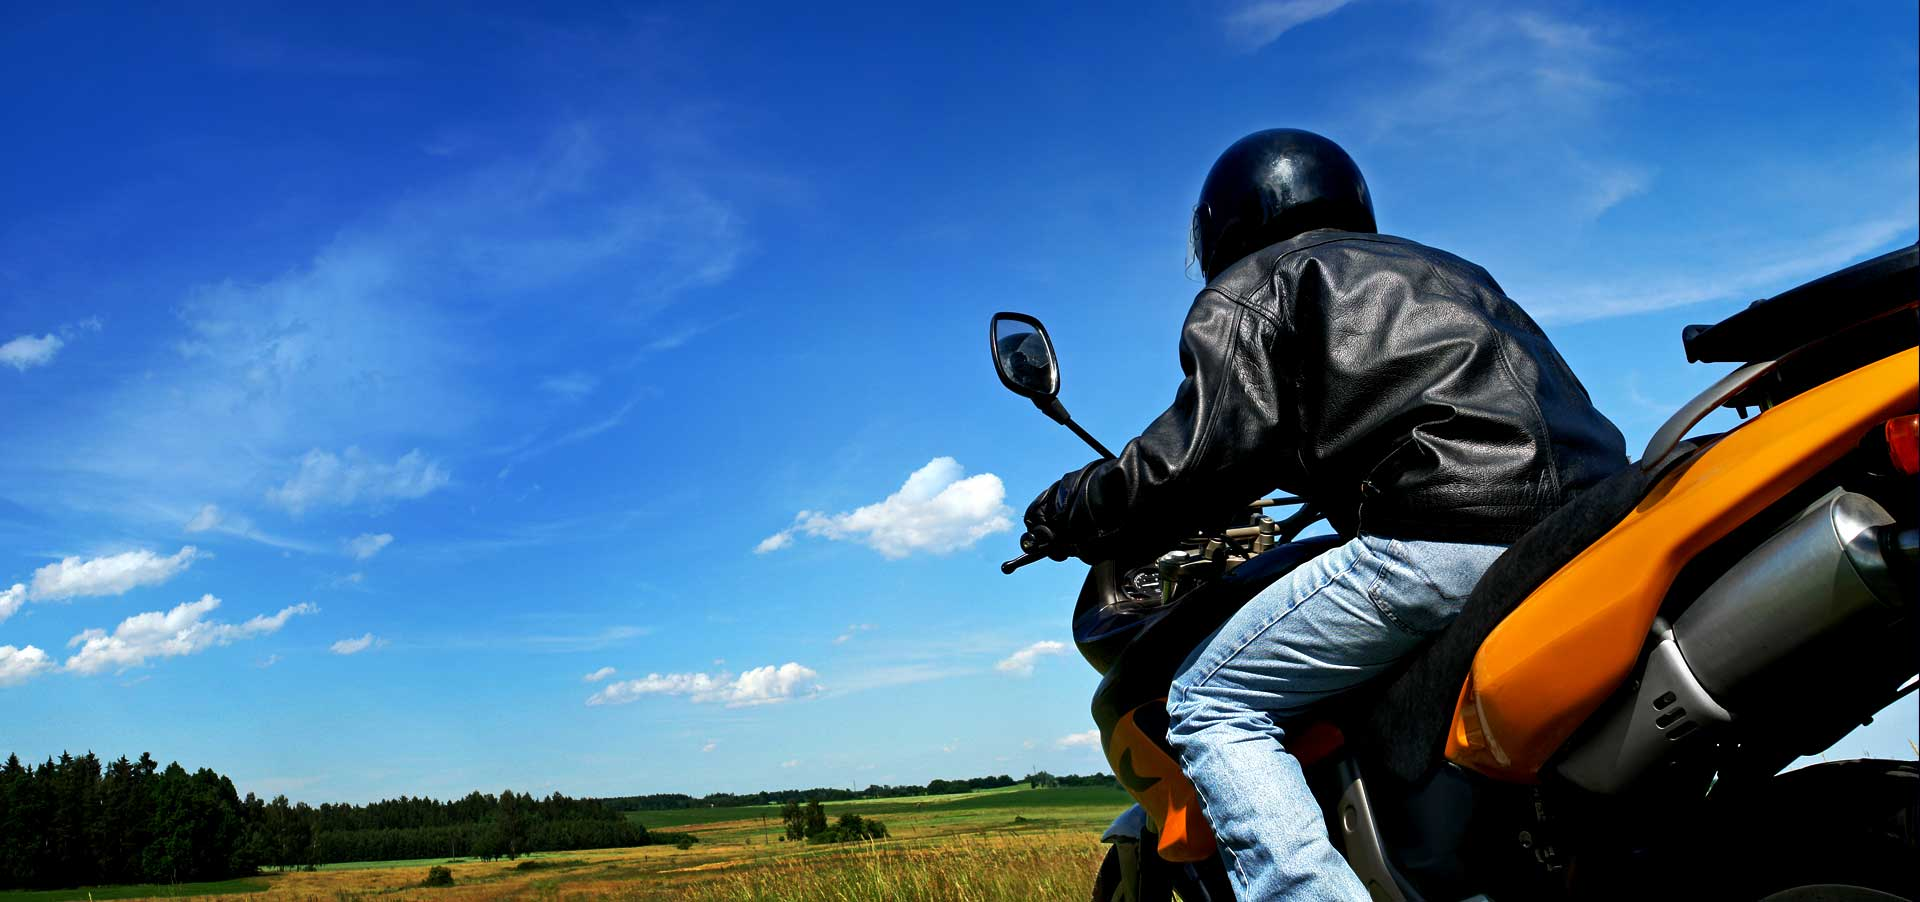 Motorcycle Accident banner image